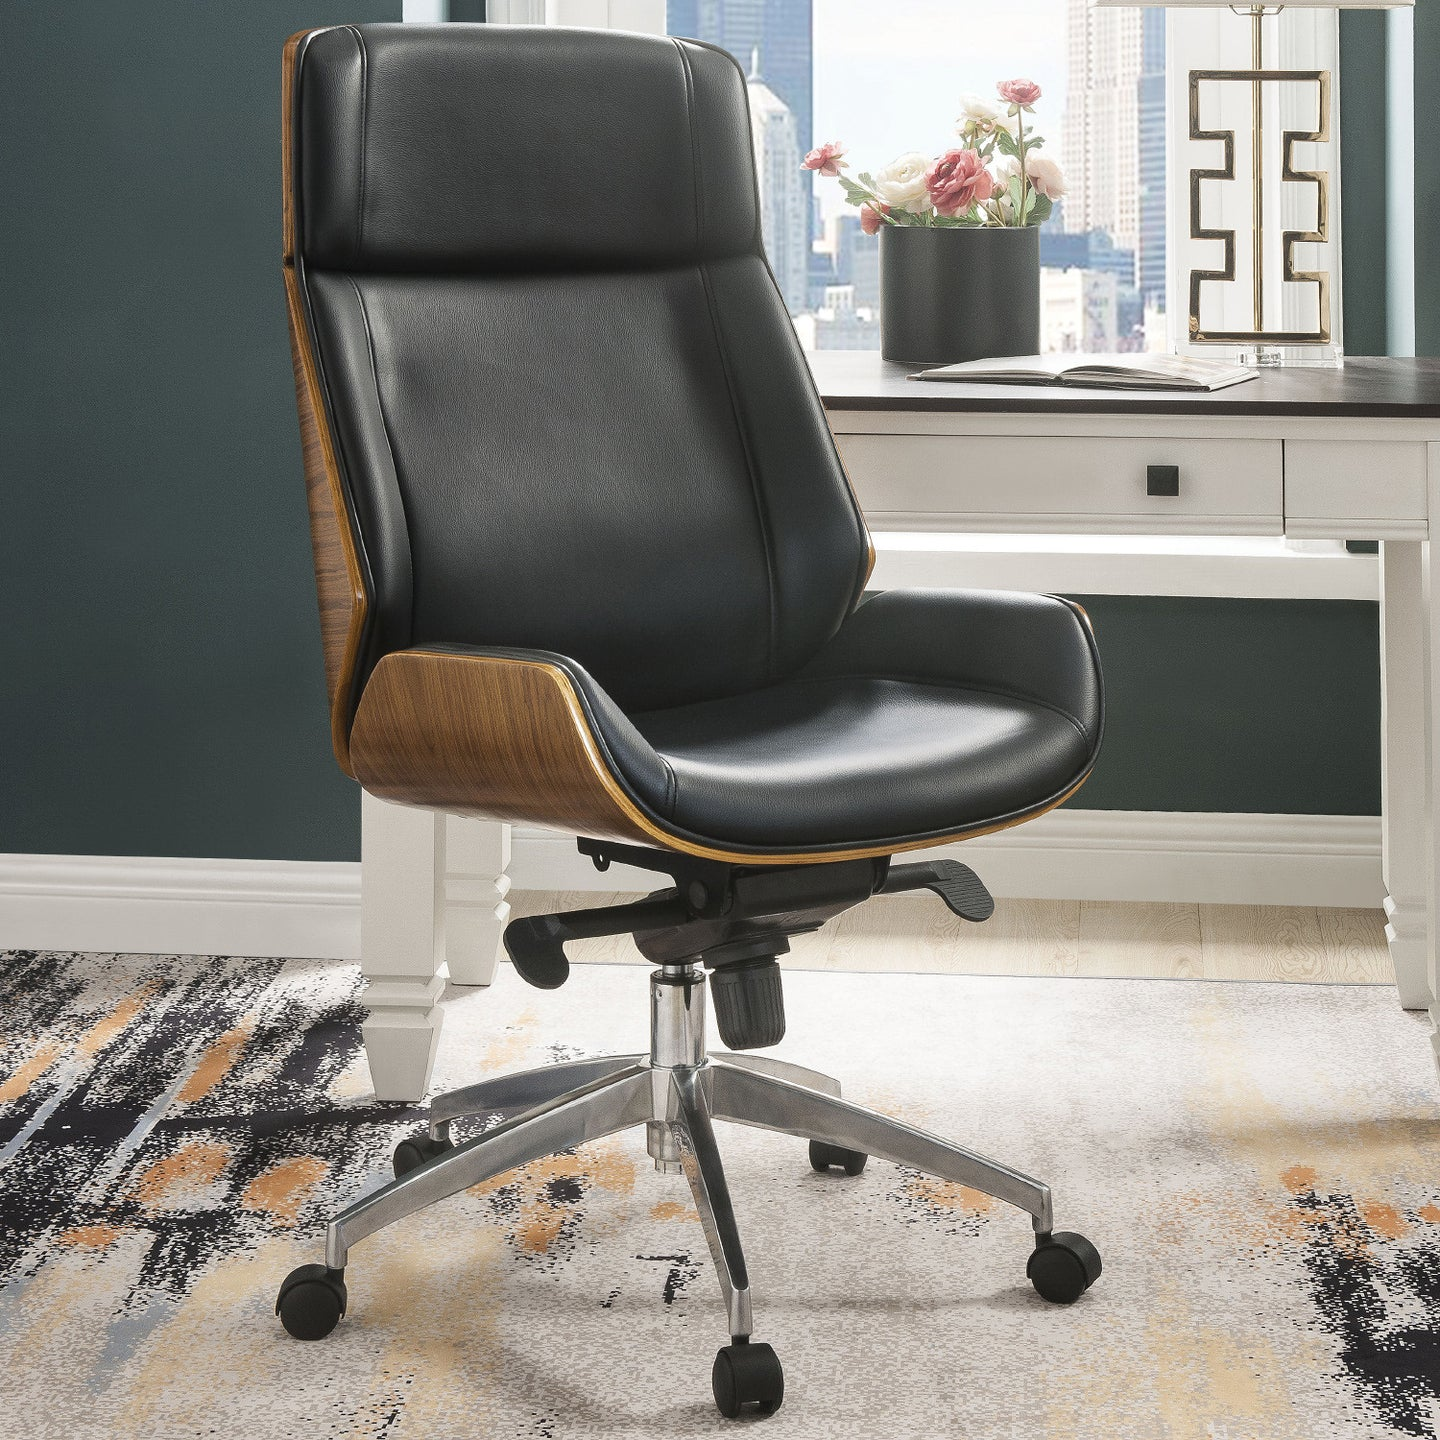 Acme 92295 Conroy Black And Walnut PU Leather Finish Office Chair